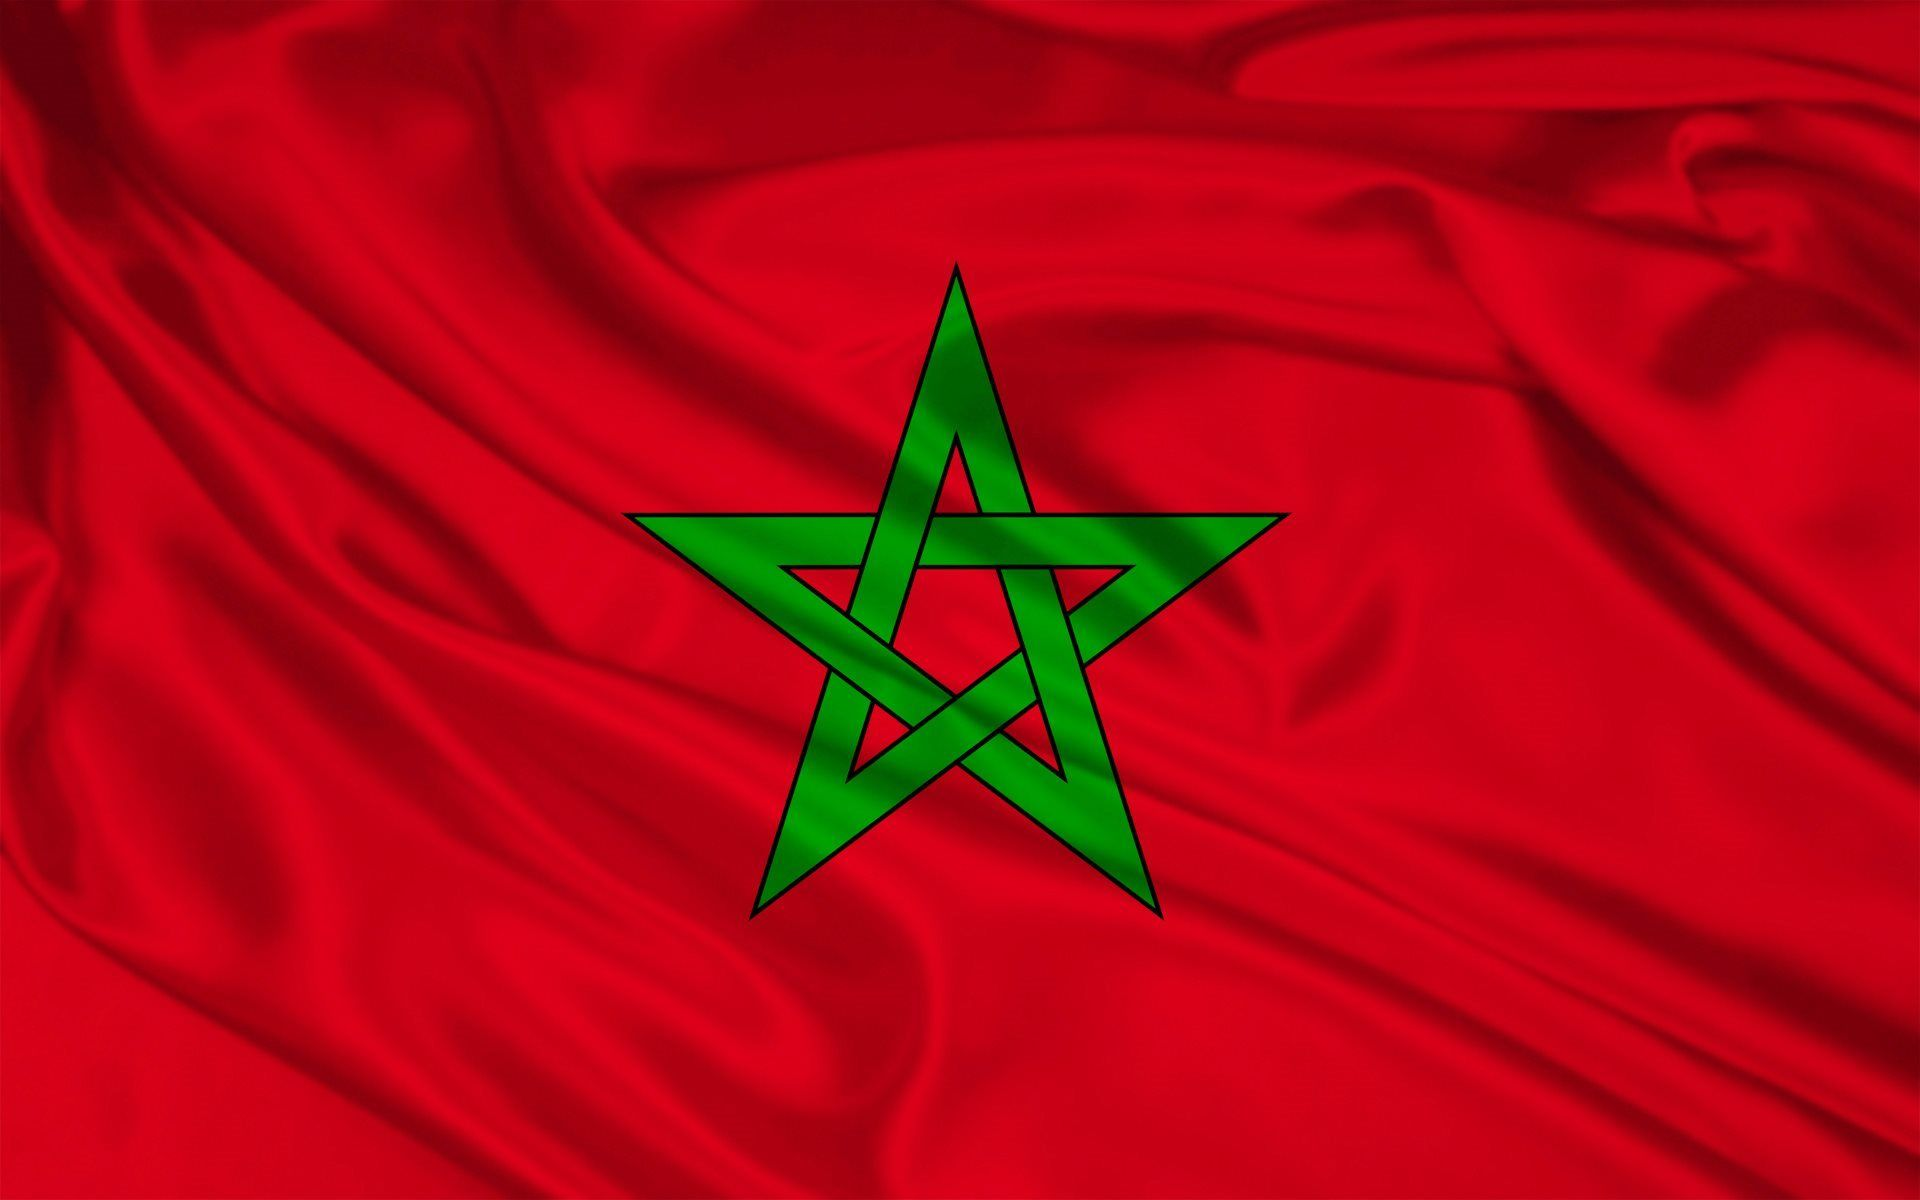 Morocco Arresting, Harassing Christian Converts in Crackdown on Christianity